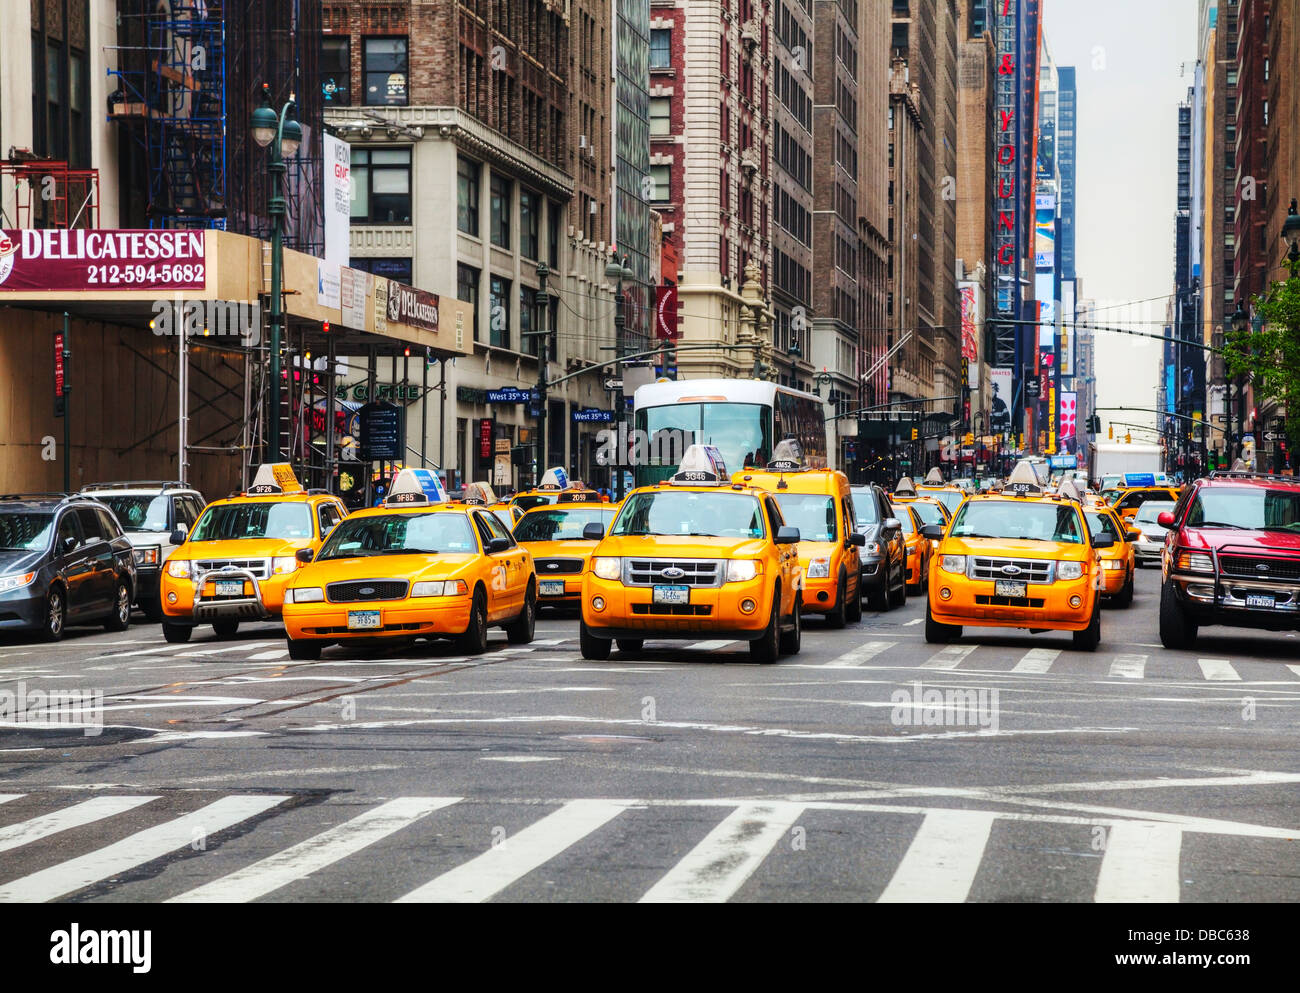 yellow taxis at the street in new york yellow cars serve as taxis in stock photo 58660540 alamy. Black Bedroom Furniture Sets. Home Design Ideas